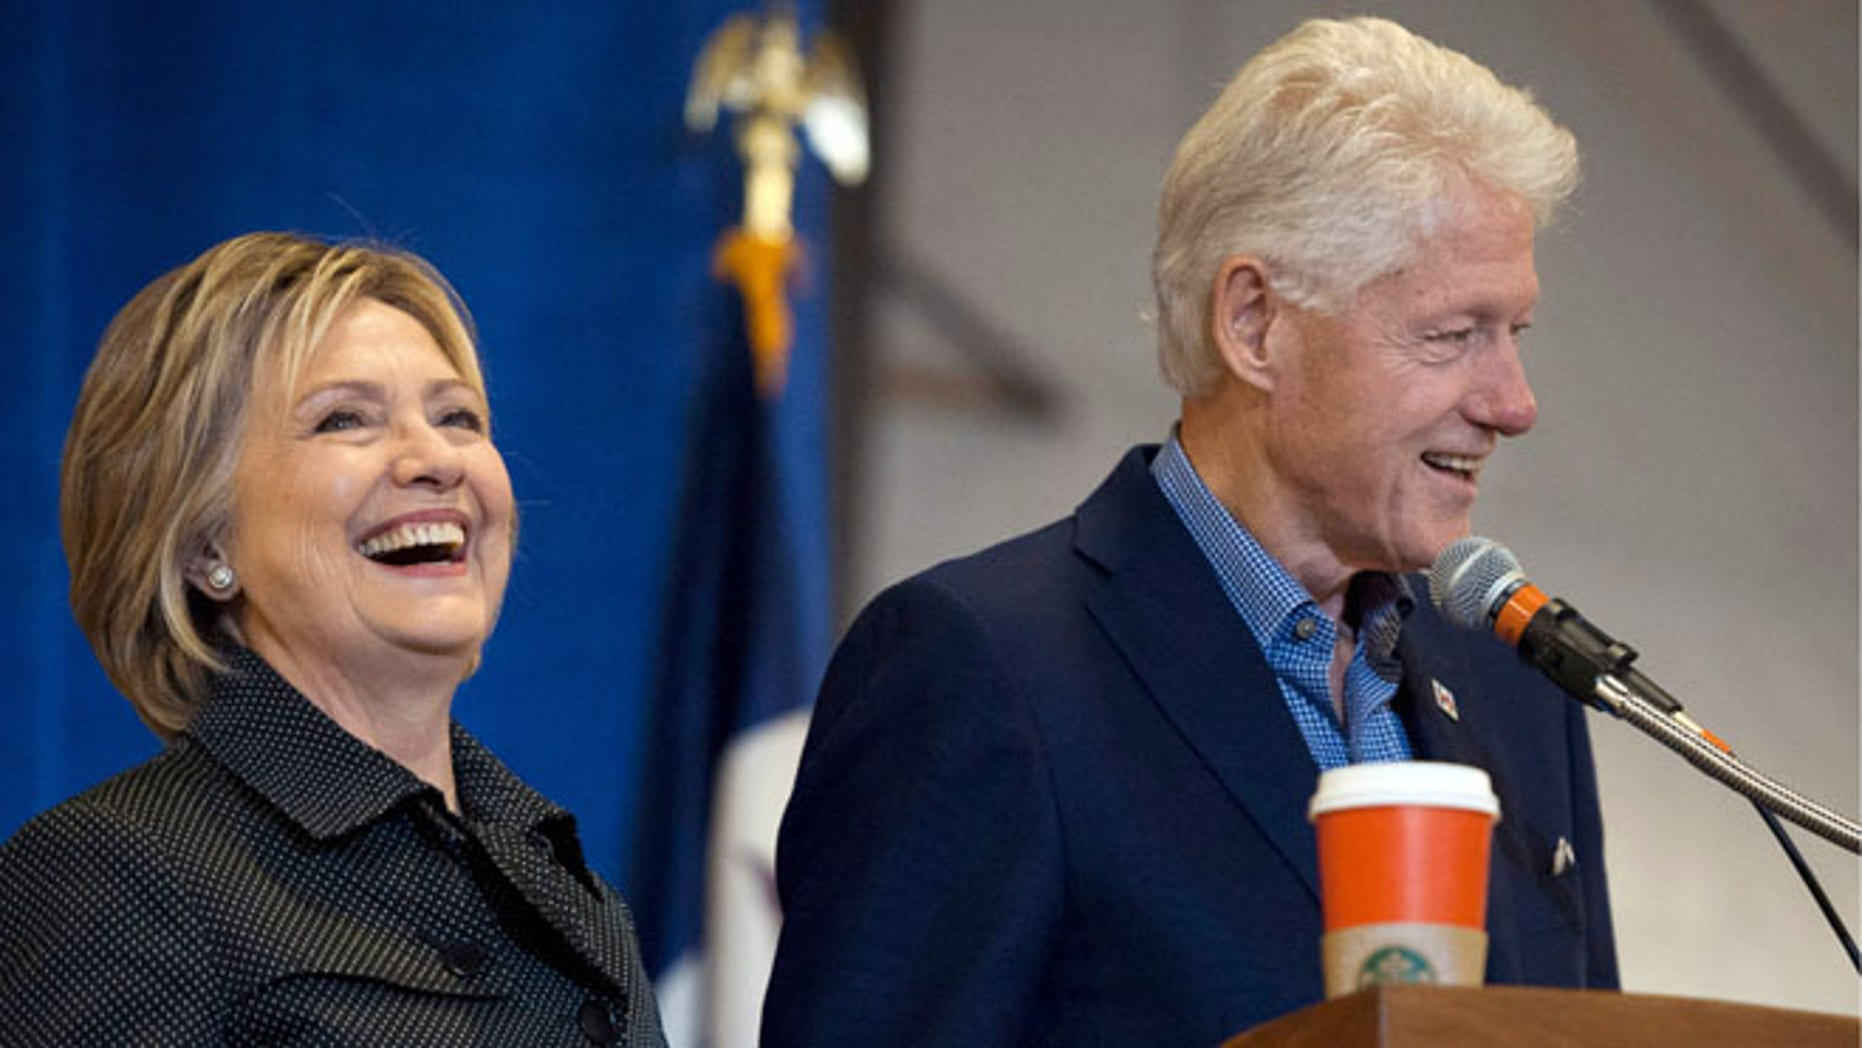 FILE: Nov. 15, 2015: Former U.S. President Clinton with wife Democratic presidential candidate Hillary Clinton at a barbecue in Ames, Iowa. (REUTERS)